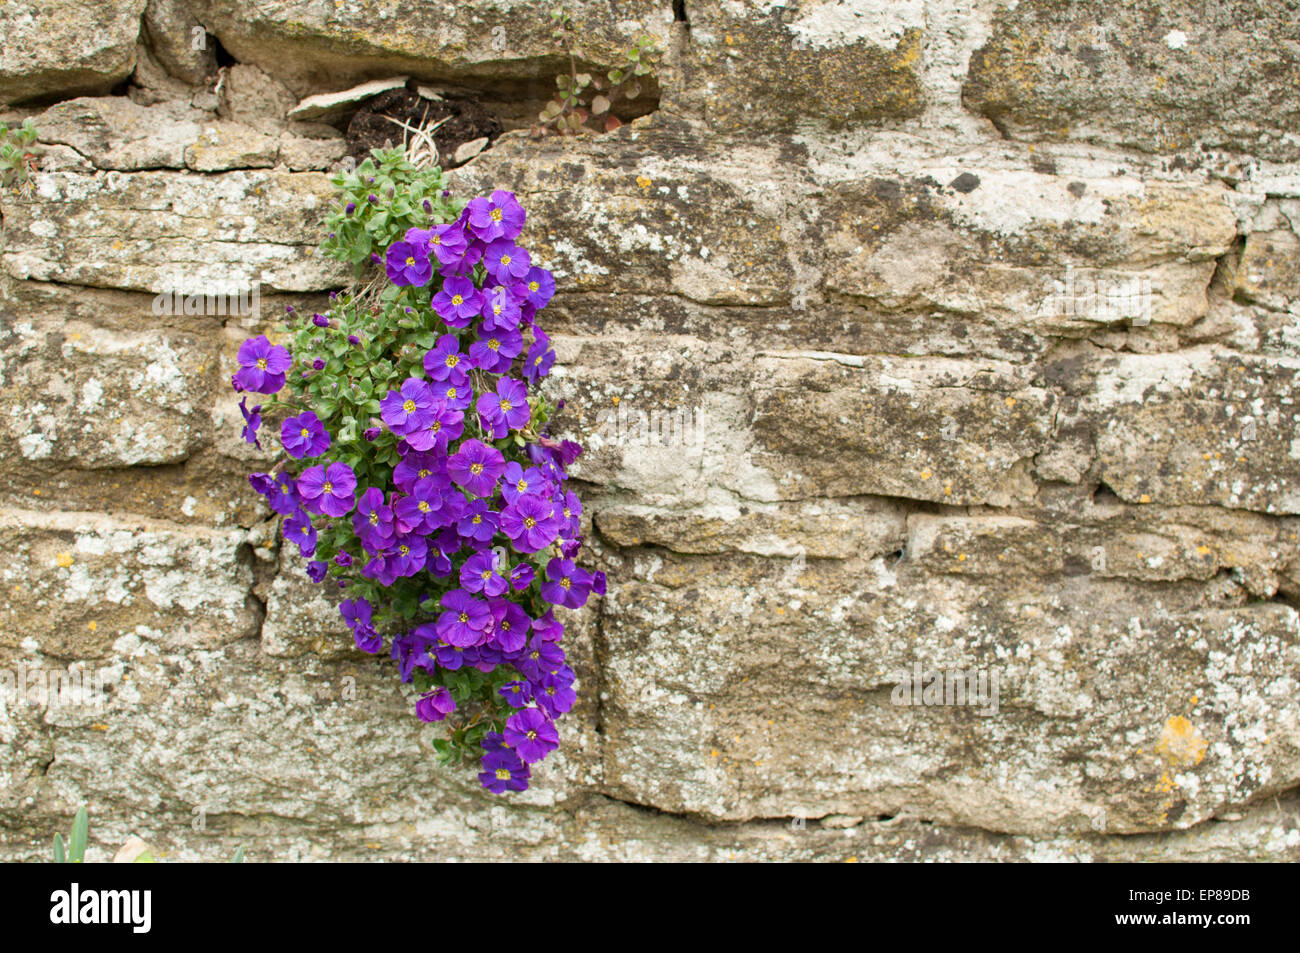 Viola 'Velour Purple and White' (Violaceae / Violaceae) growing from stone wall - Stock Image